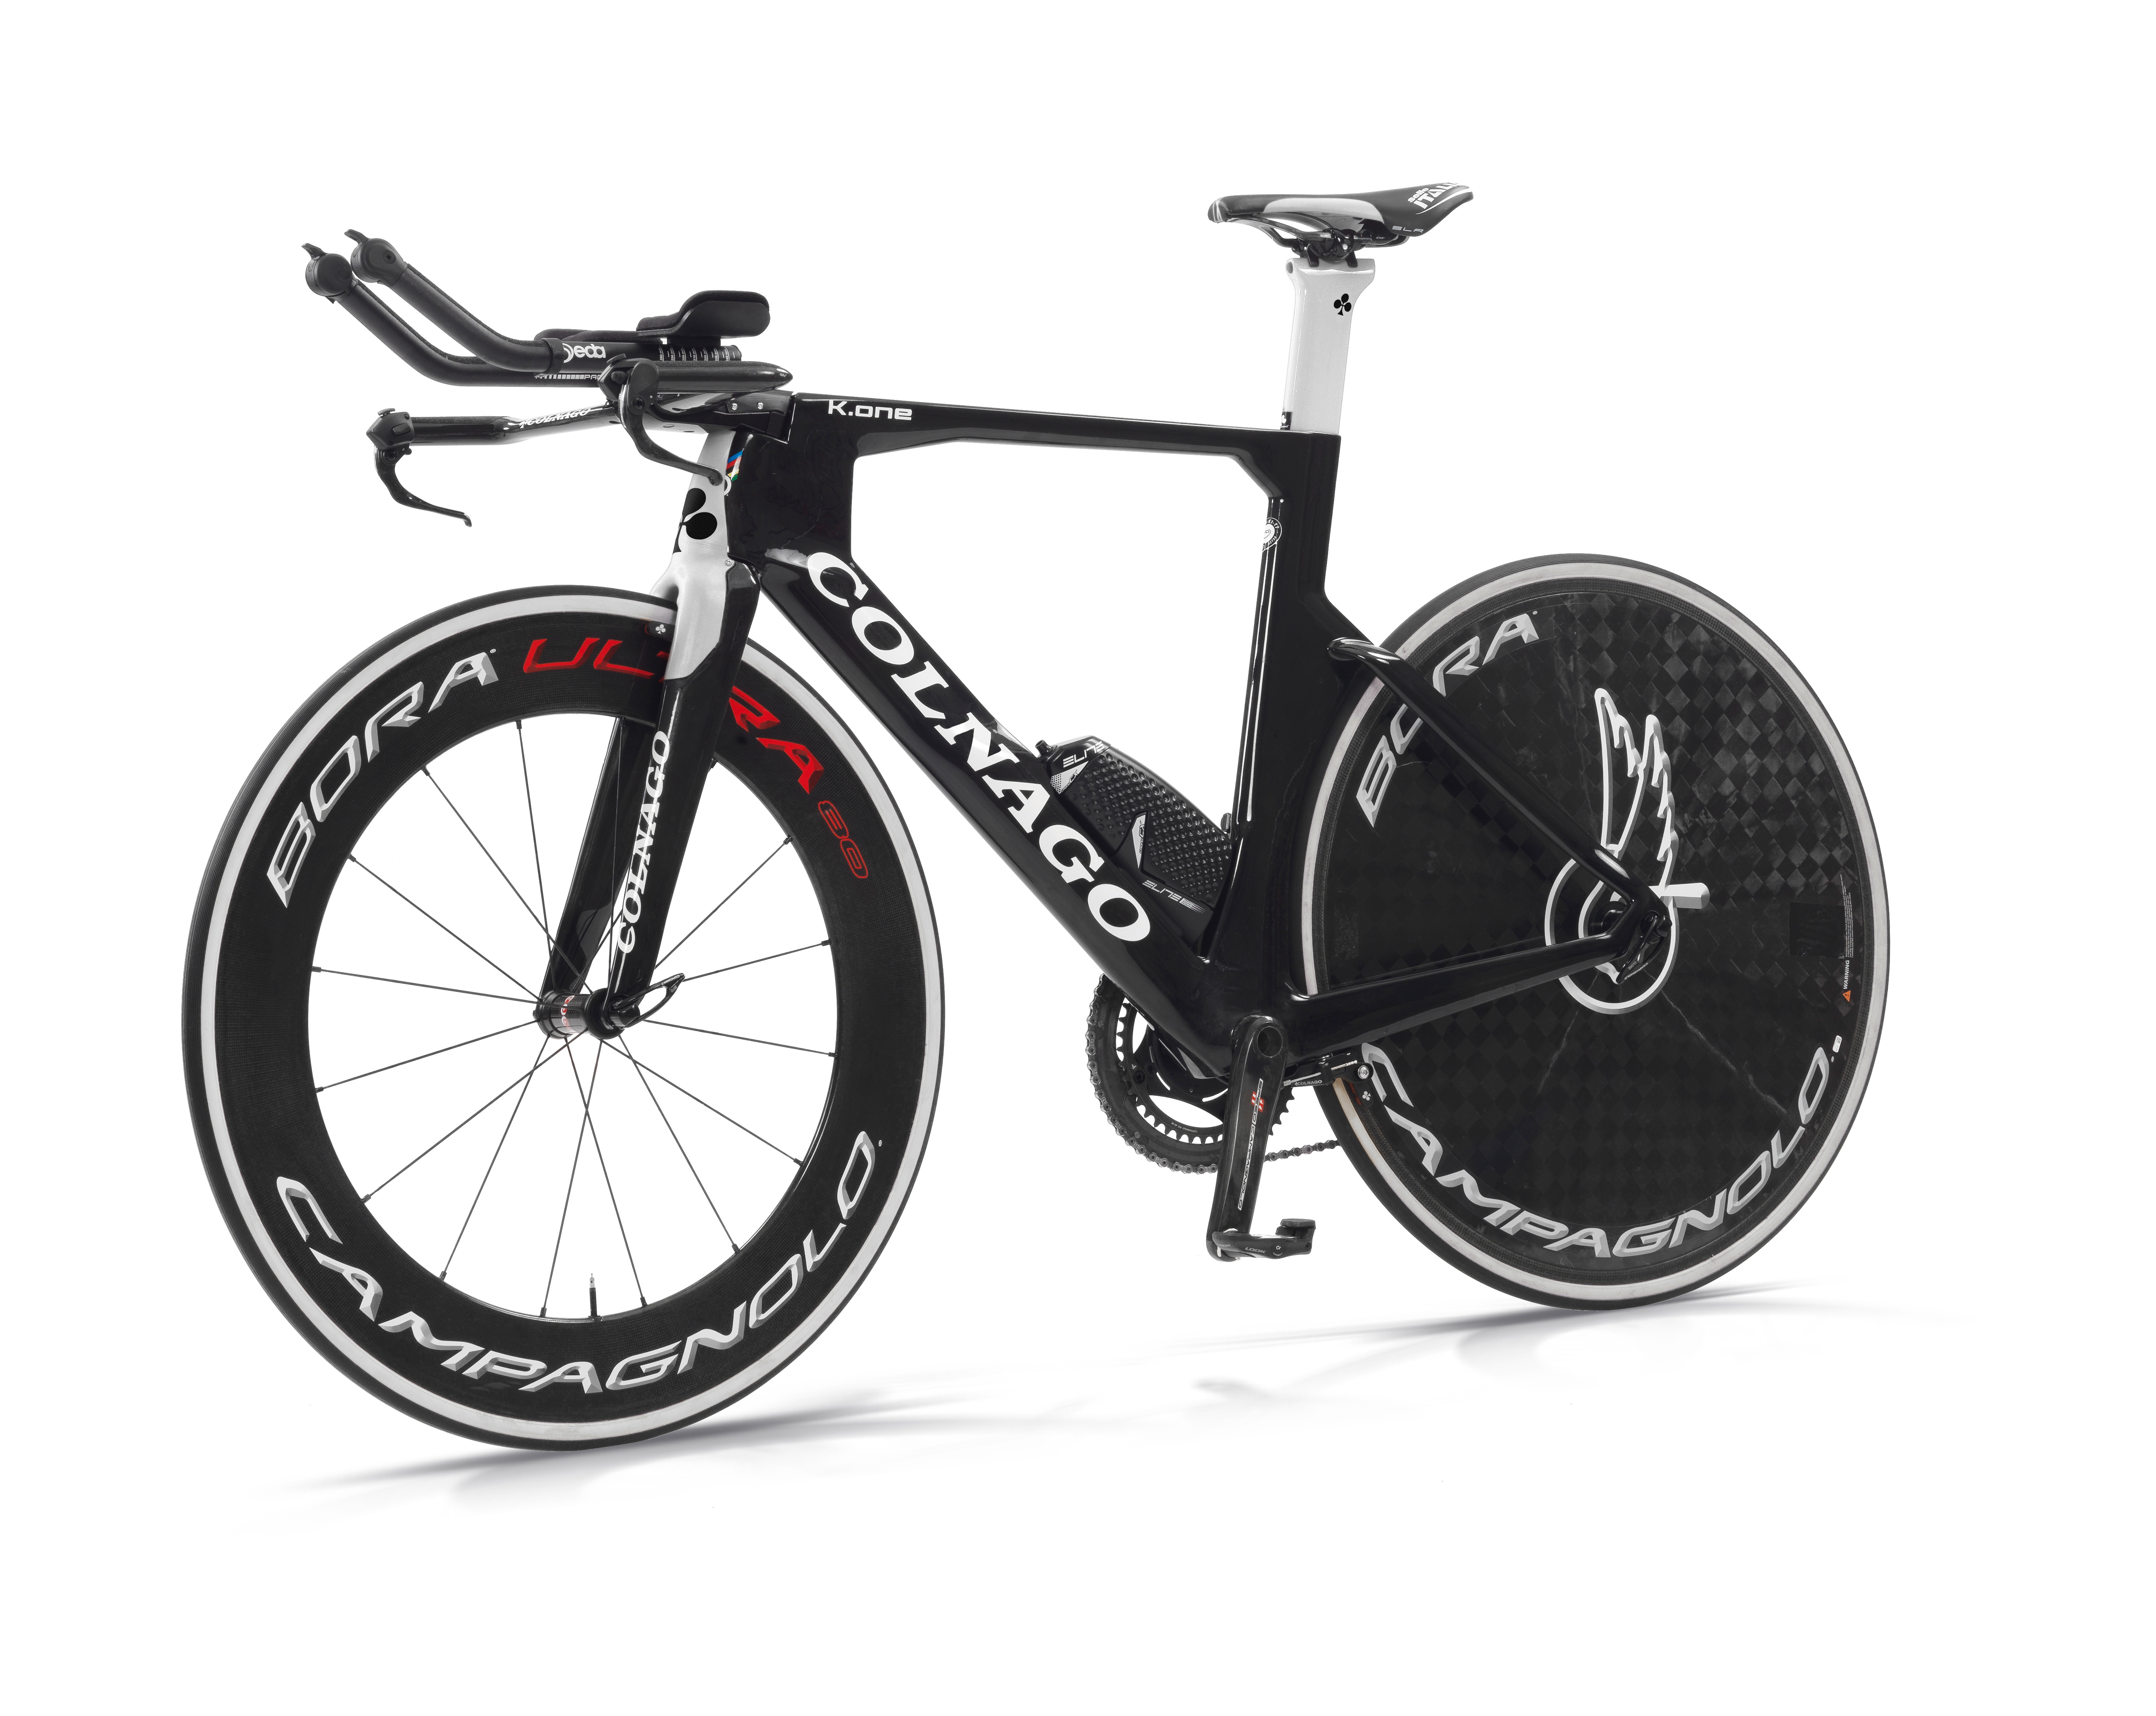 Colnago Bicycle Cycle Bike K.One Carbon Brake Cover